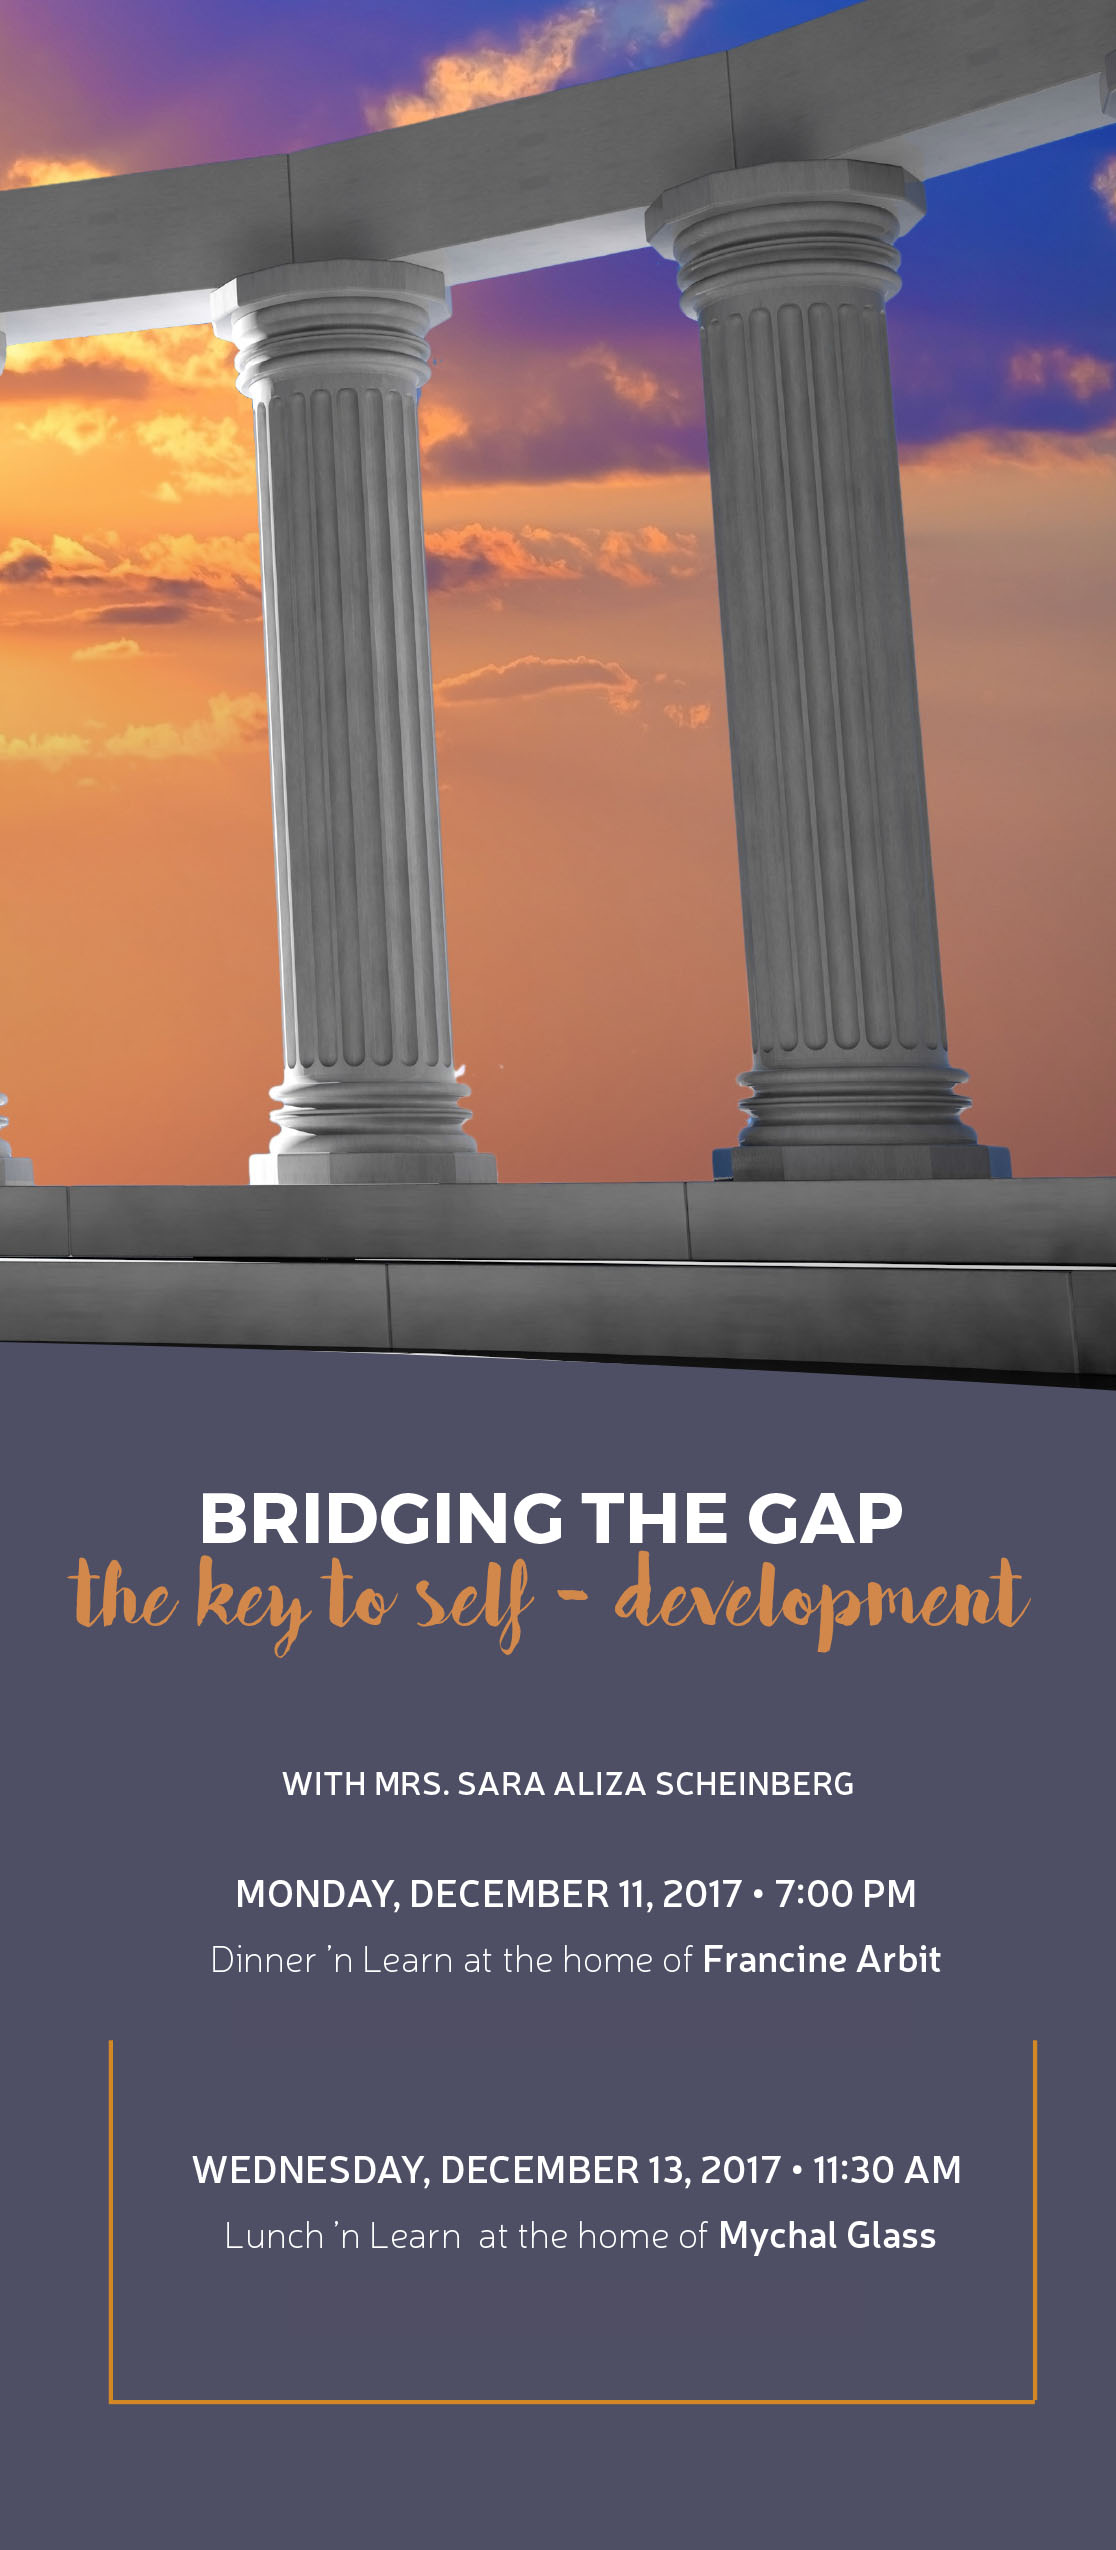 Pillars: Bridging the Gap - The Key to Self-Development Dinner 'n Learn